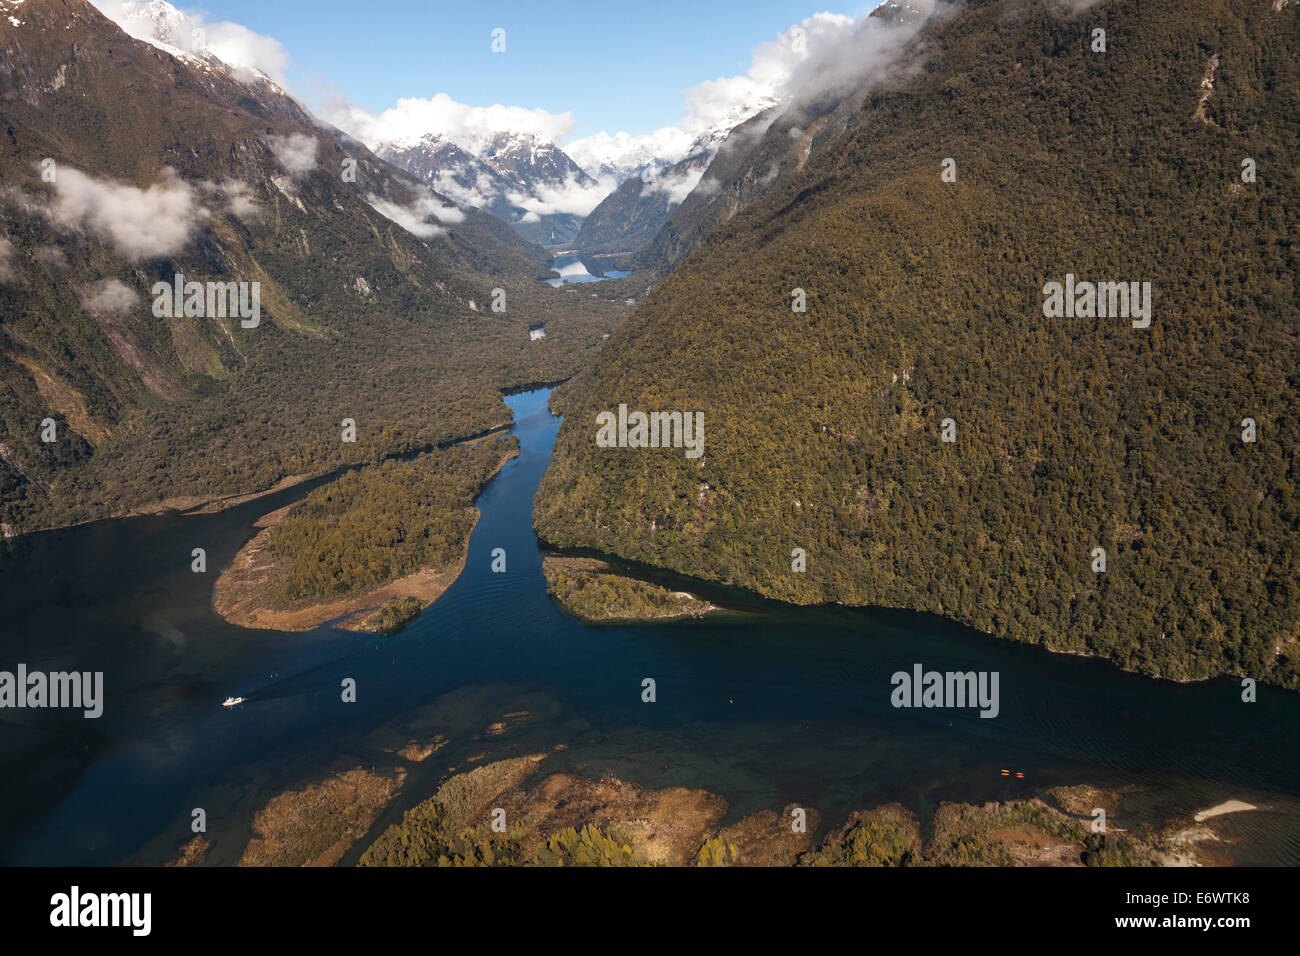 Aerial view of Milford Sound with Sandfly Point and Arthur River, Fiordland National Park, South Island, New Zealand - Stock Image